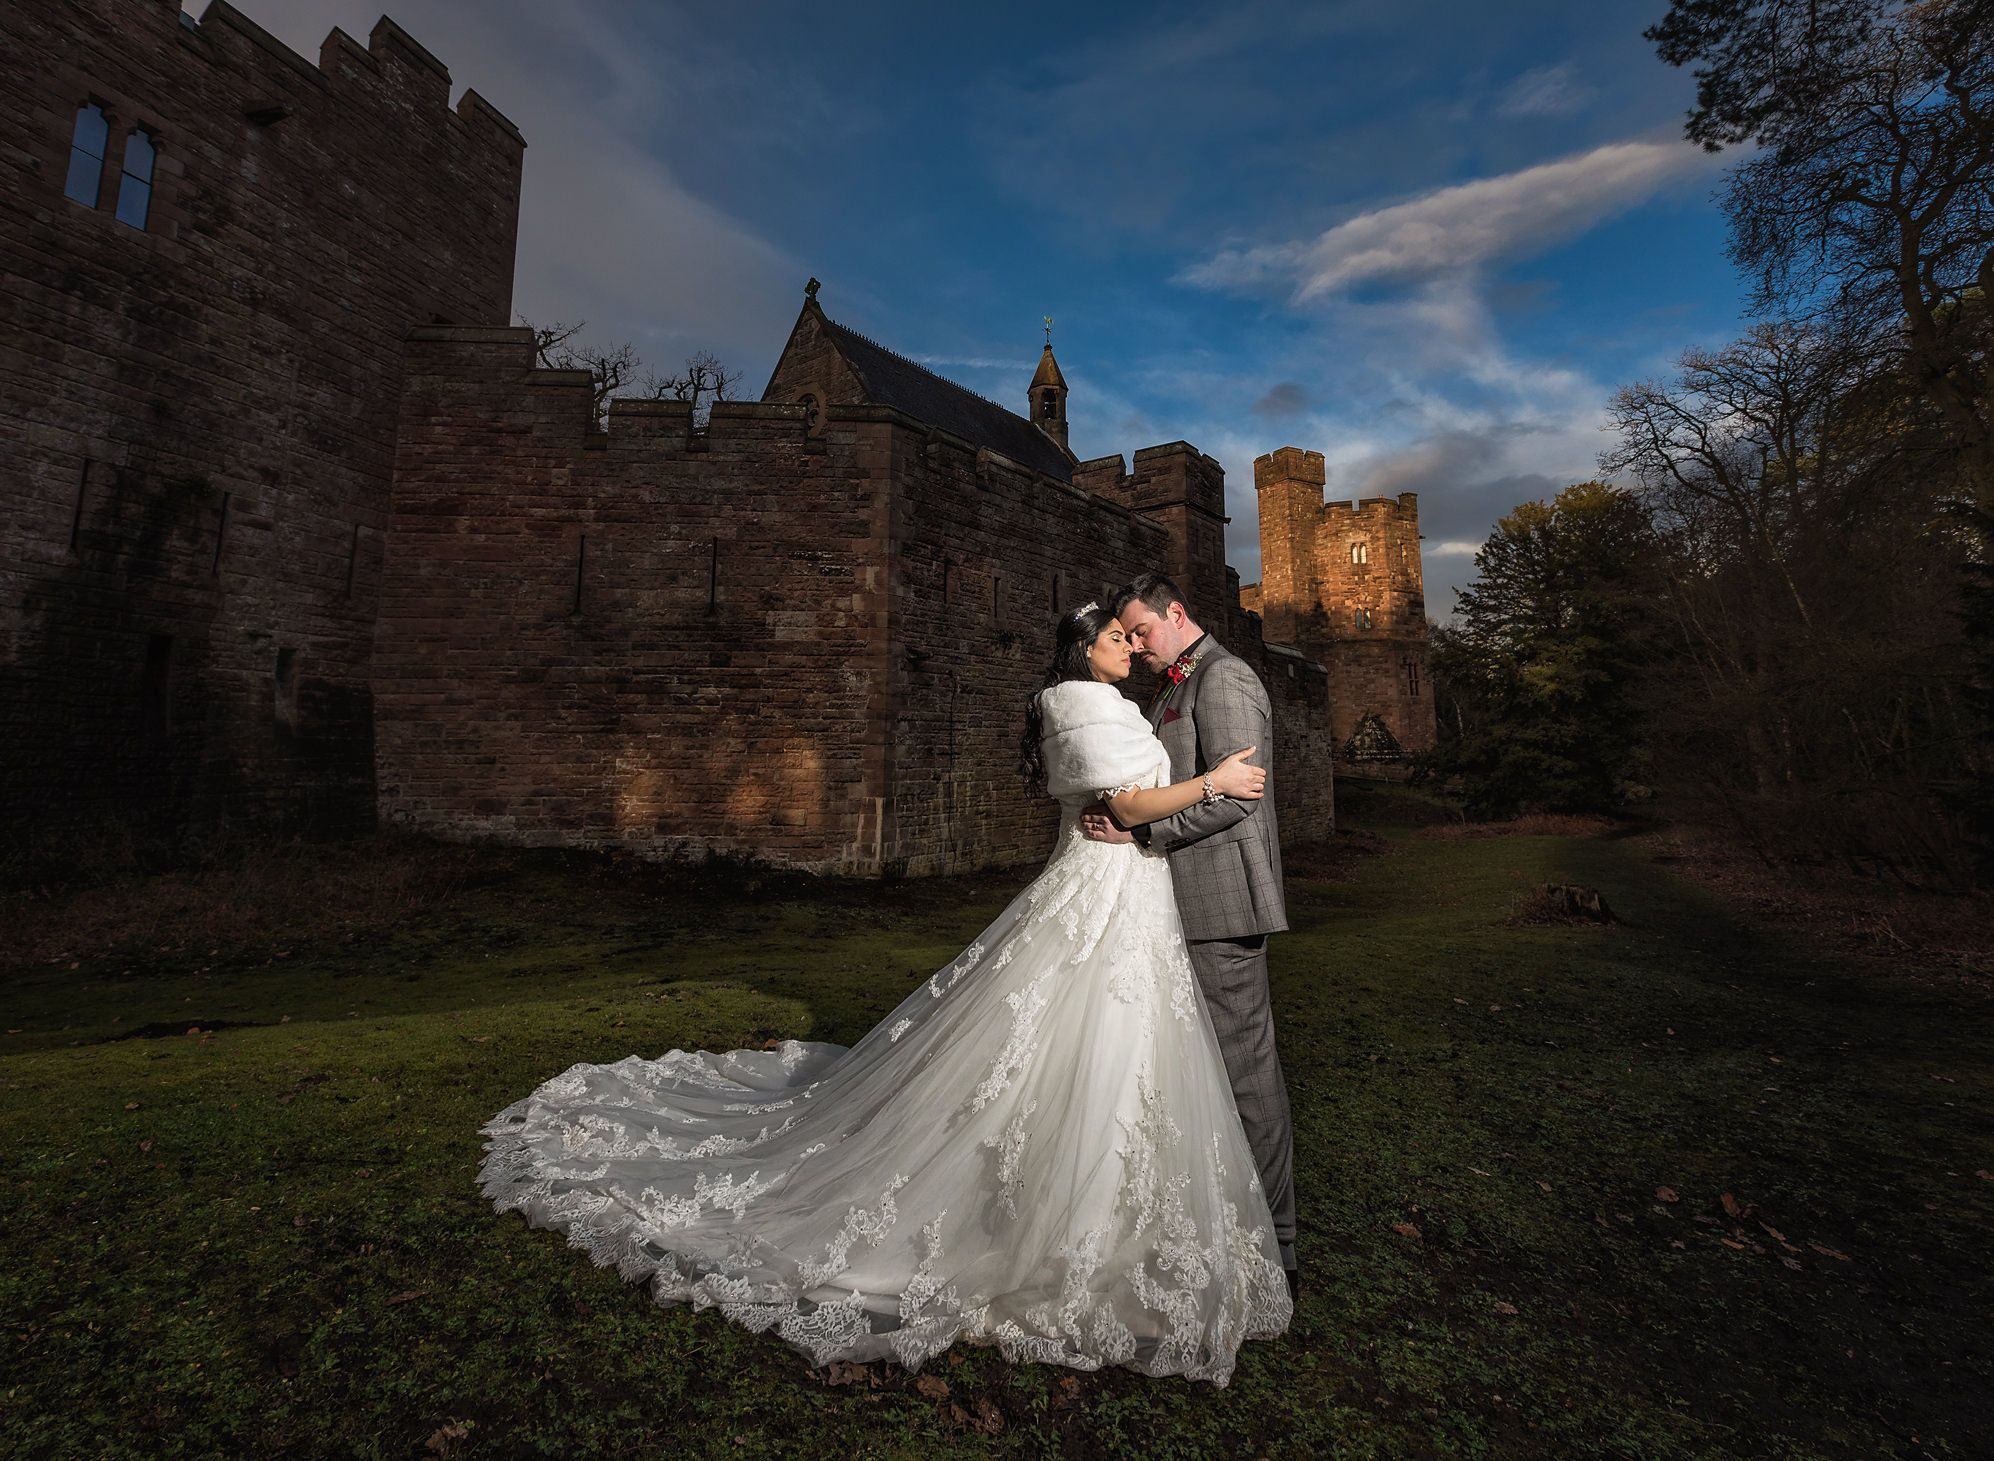 Bride and groom hold each other outside the walls of Peckforton Castle on their summer wedding day in Cheshire